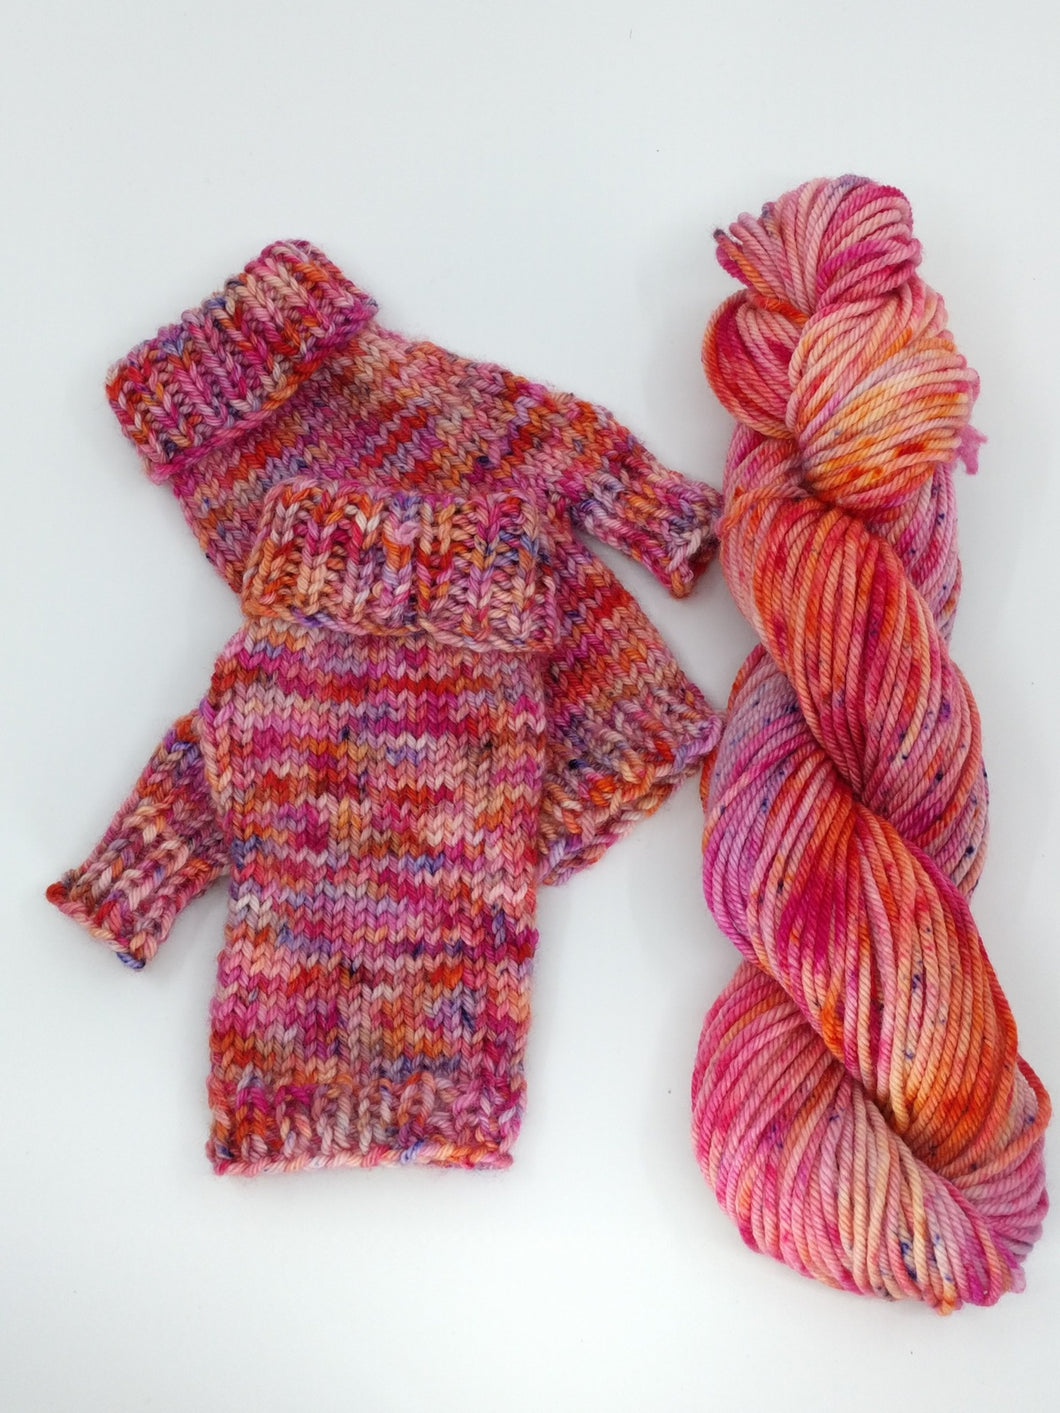 JOYFUL- Worsted Merino